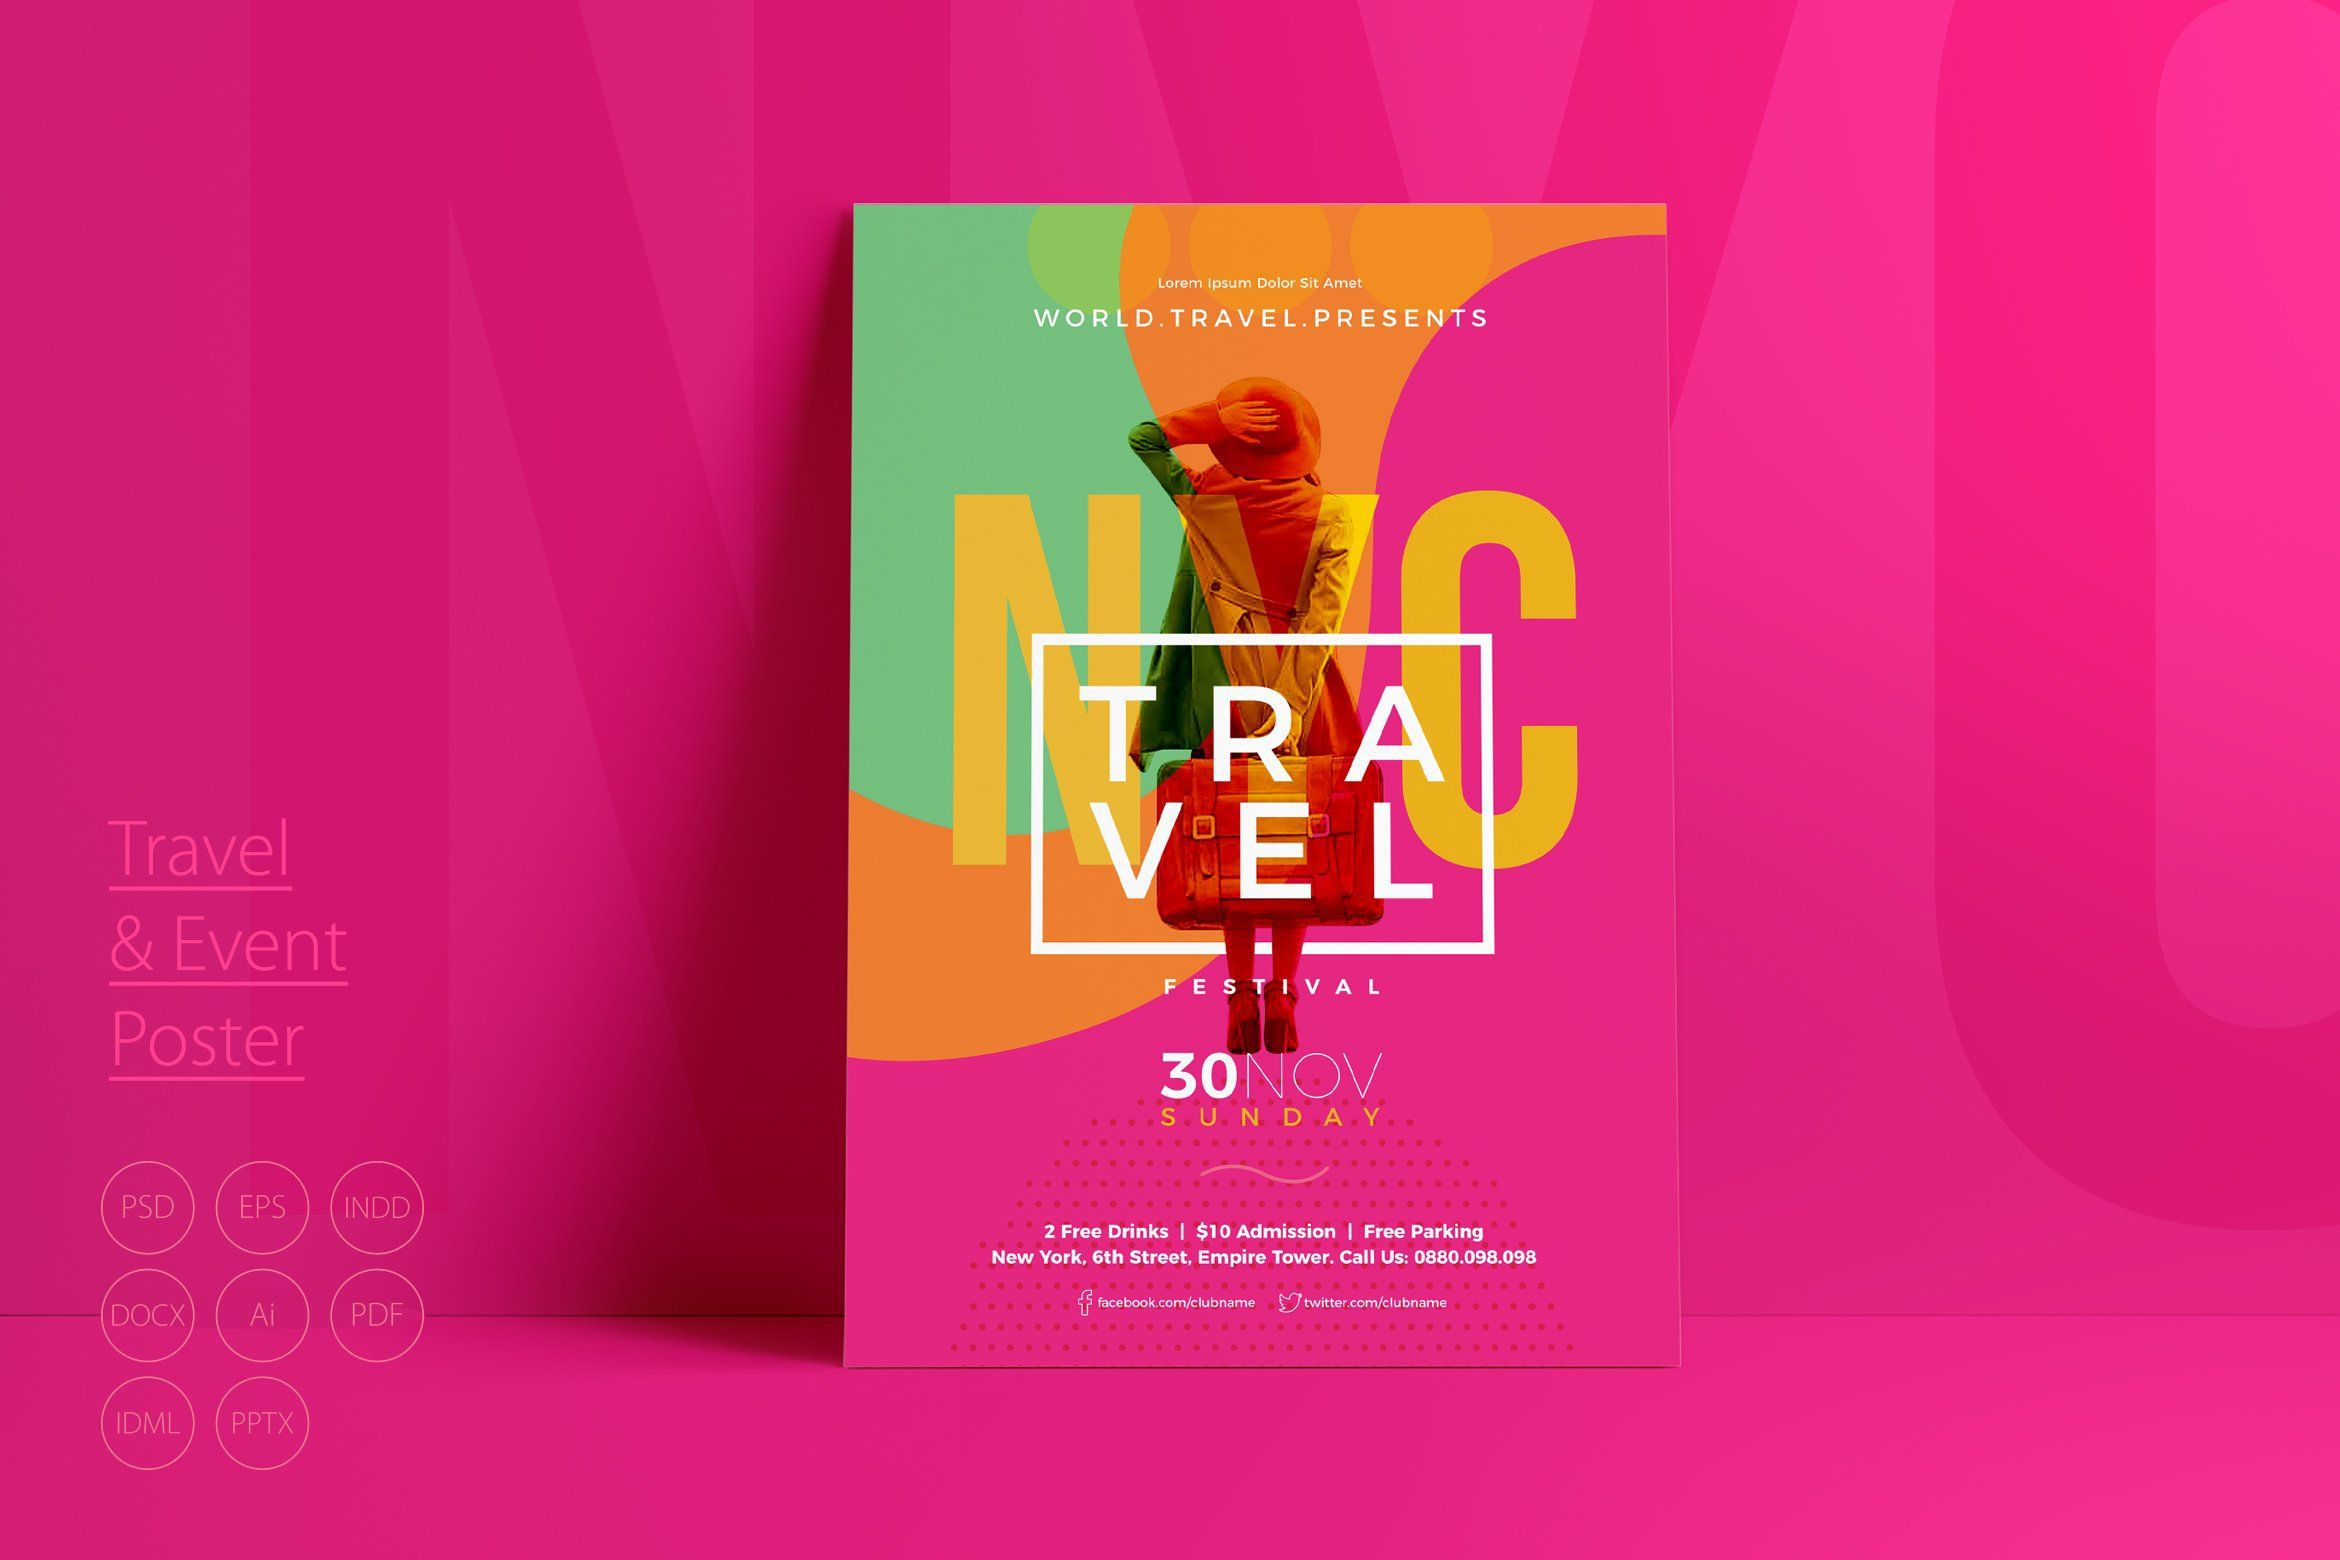 005 Simple Event Flyer Template Free Word Picture Full